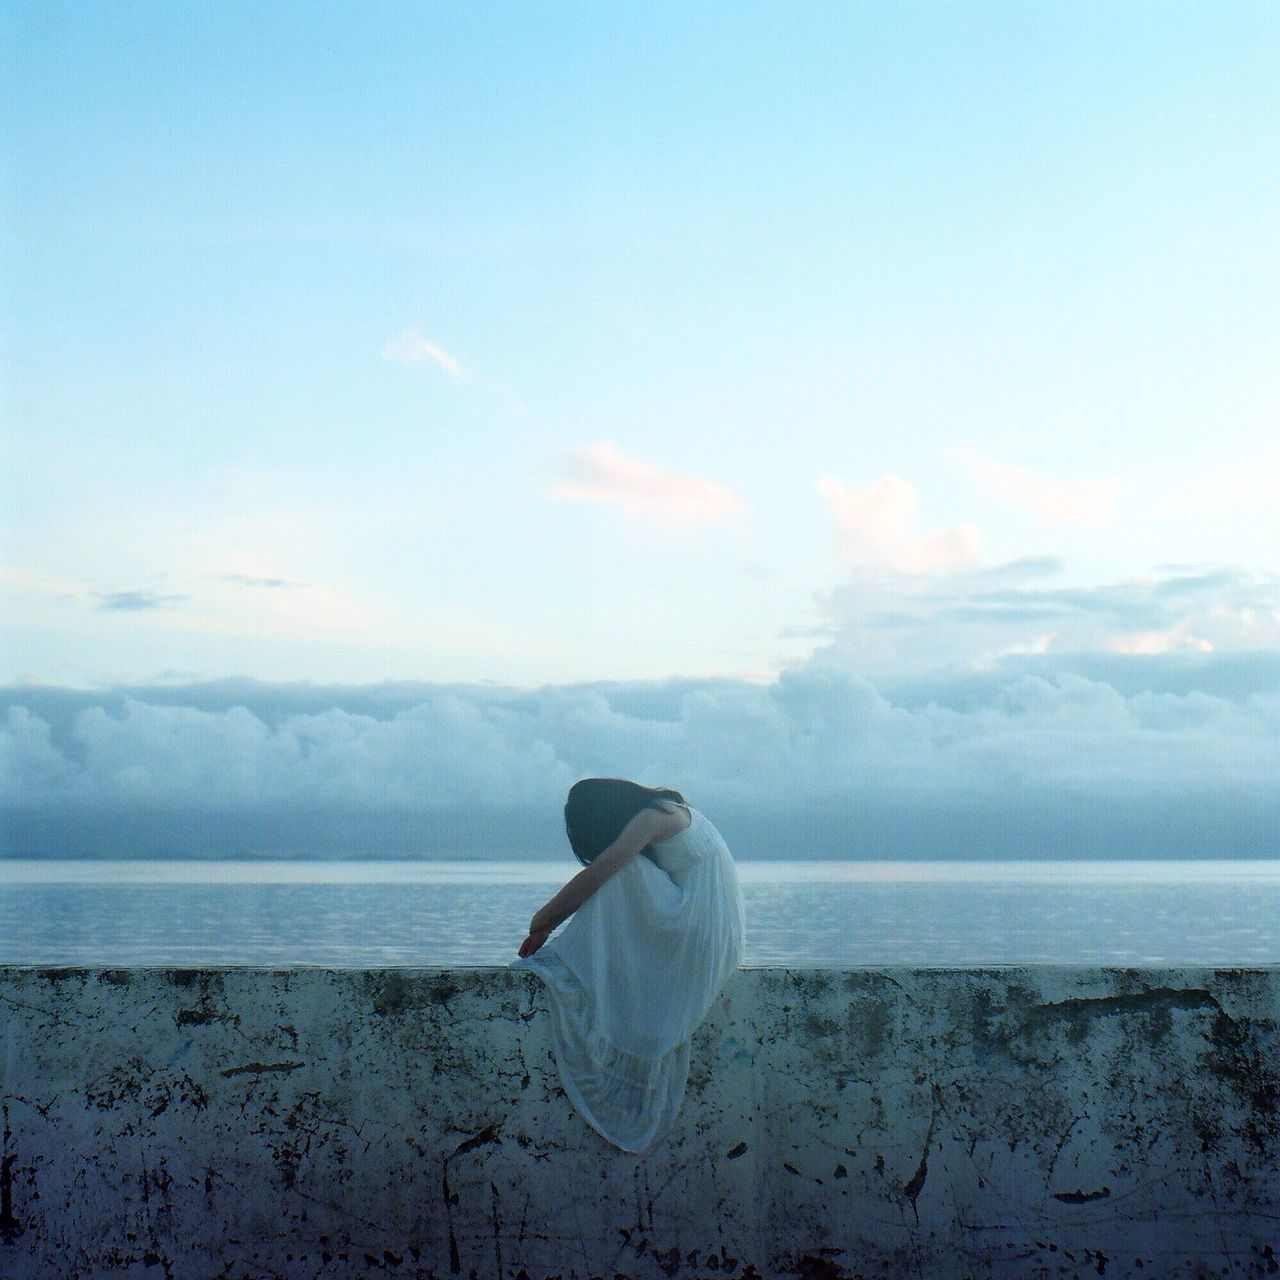 Woman Sitting On Surrounding Wall Against Cloudy Sky